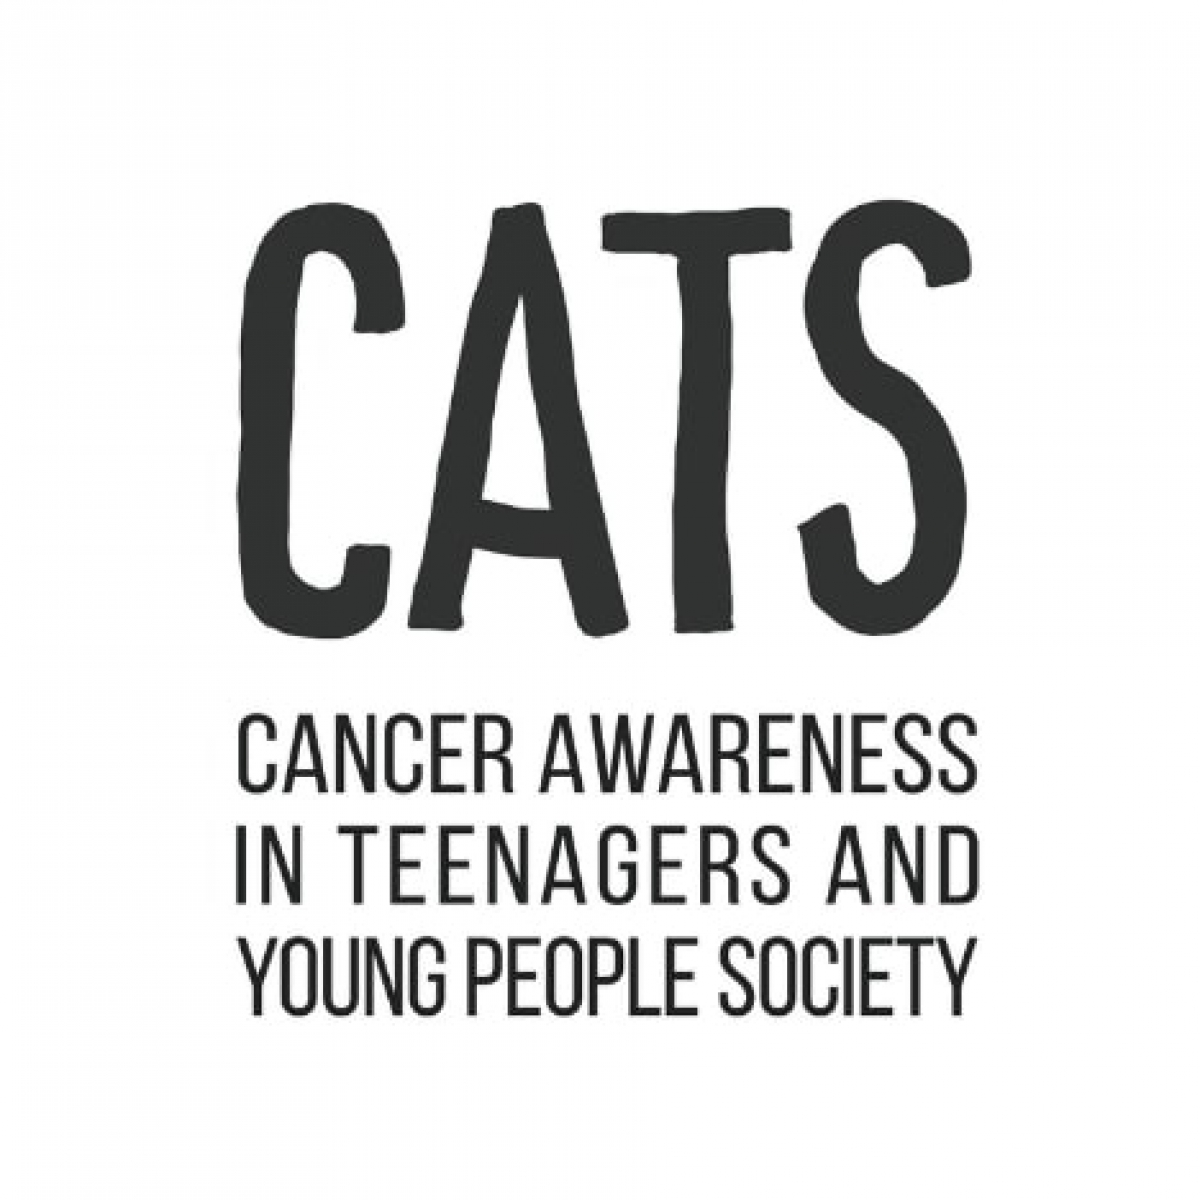 CATS (Cancer Awareness in Teenagers and Young People Society) eCards